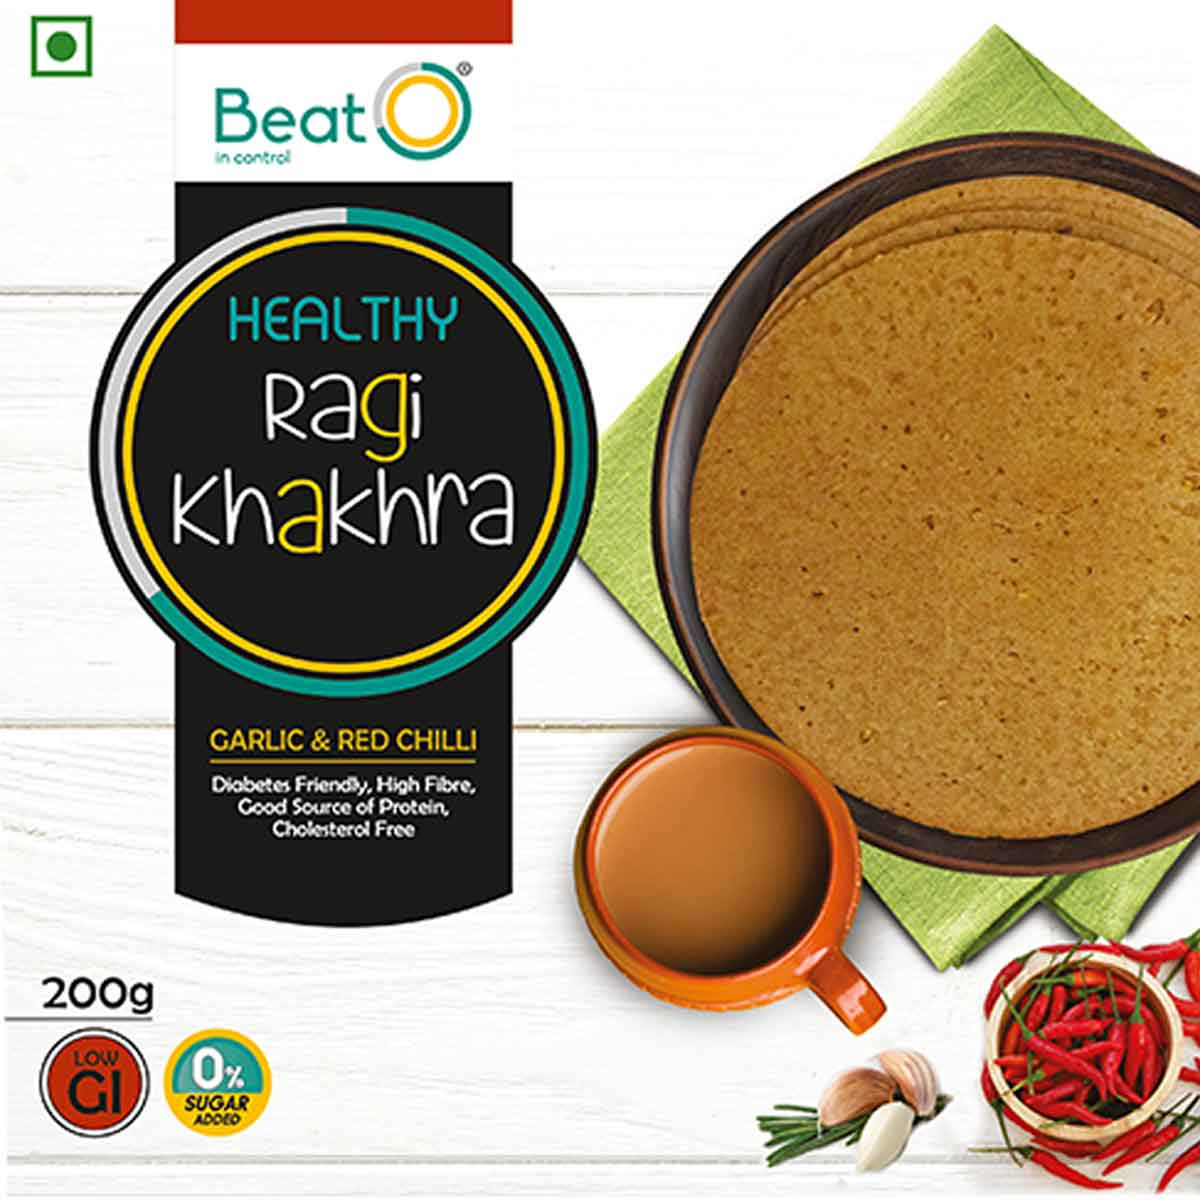 Ragi Khakhra - Garlic and Red Chilli